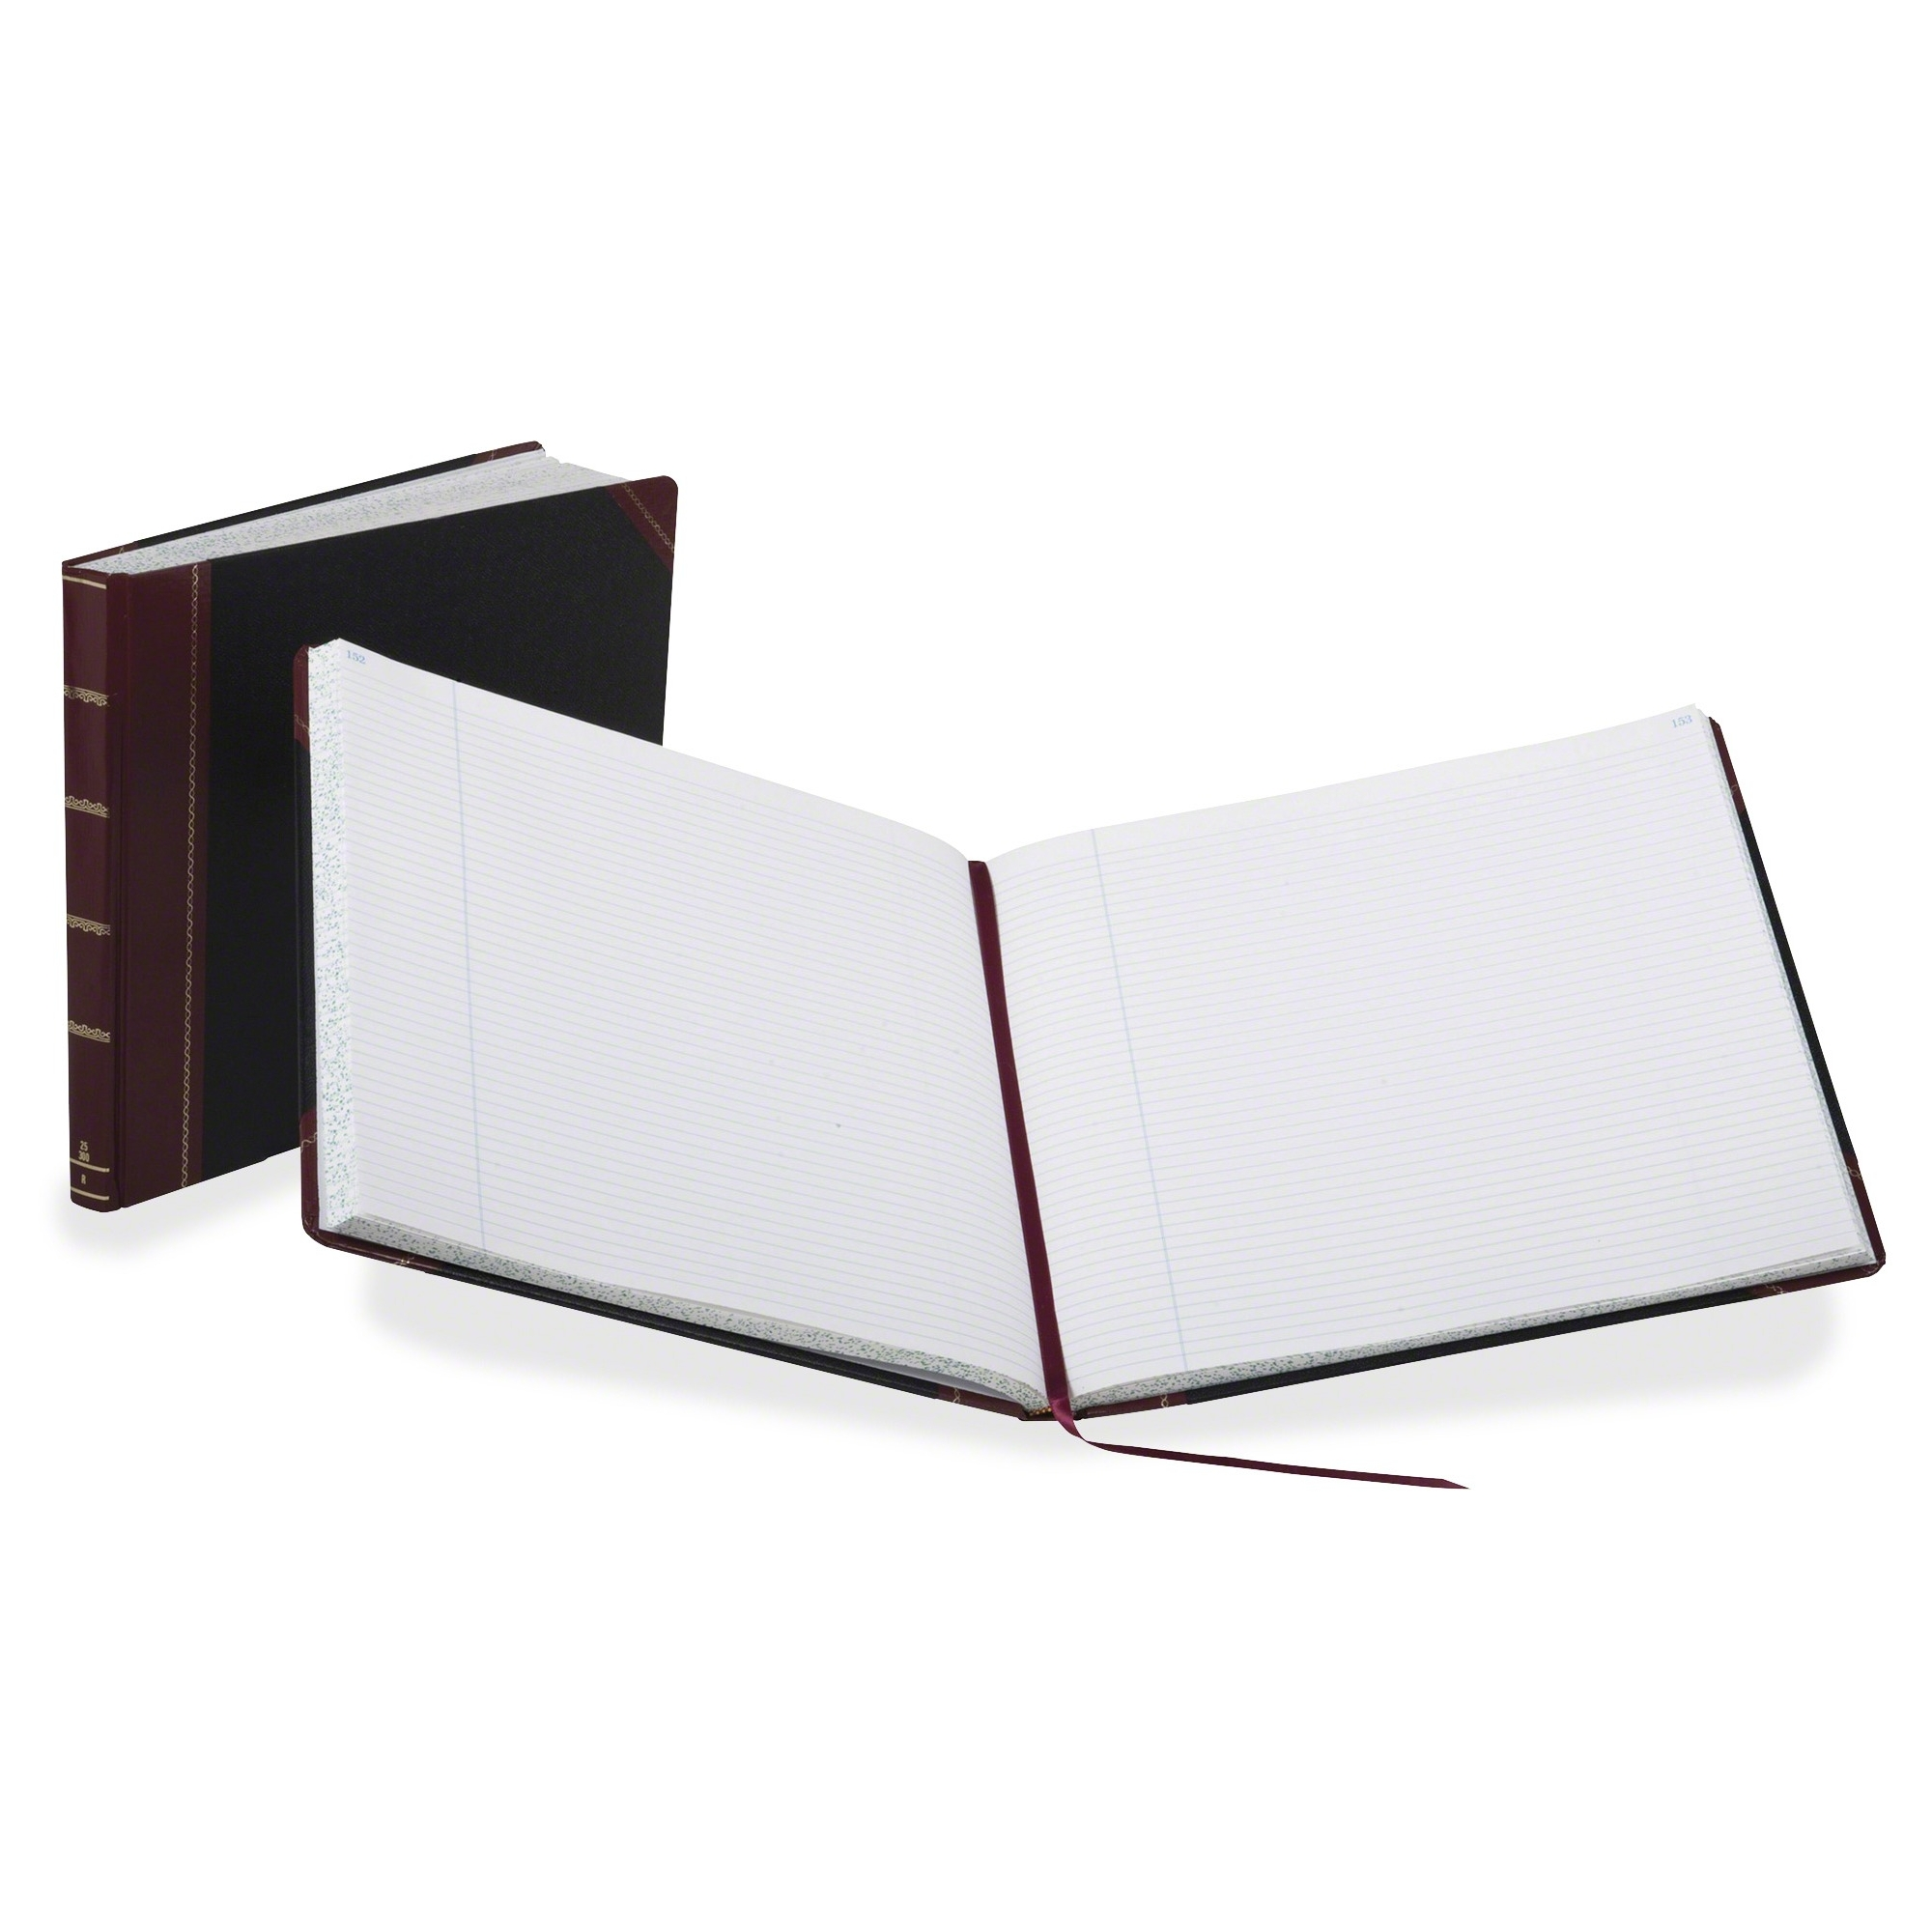 """Esselte ESS25300R Bound Columnar Book, Record Ruled, 300 Pages, 12-7/8"""""""" X 15-1/8"""""""""""